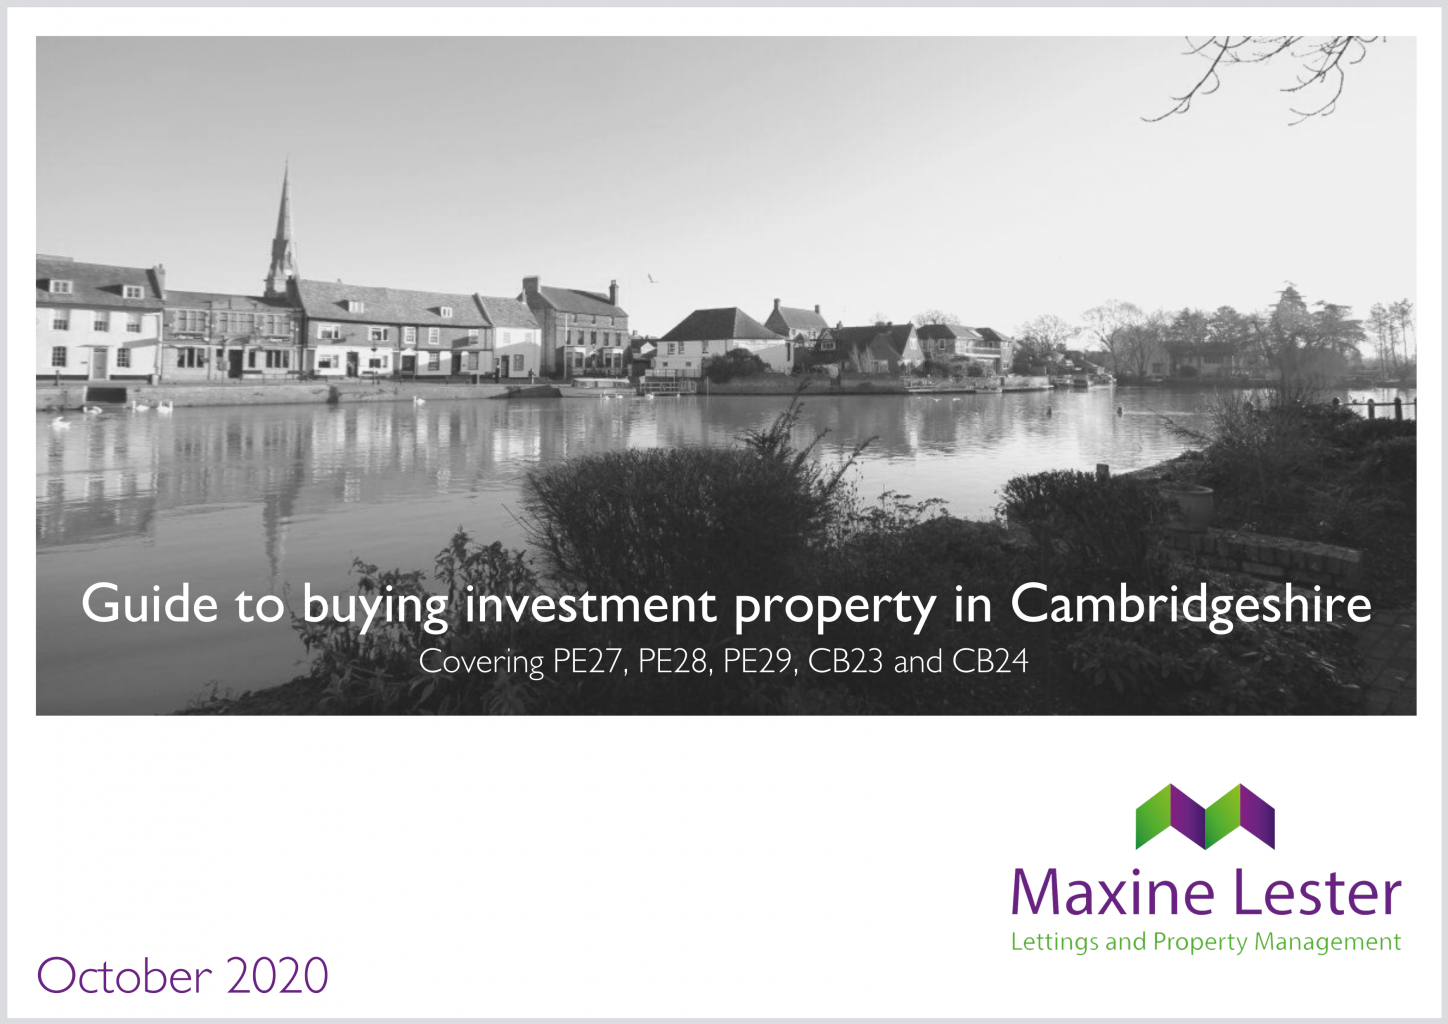 Buying investment property in Cambridgeshire